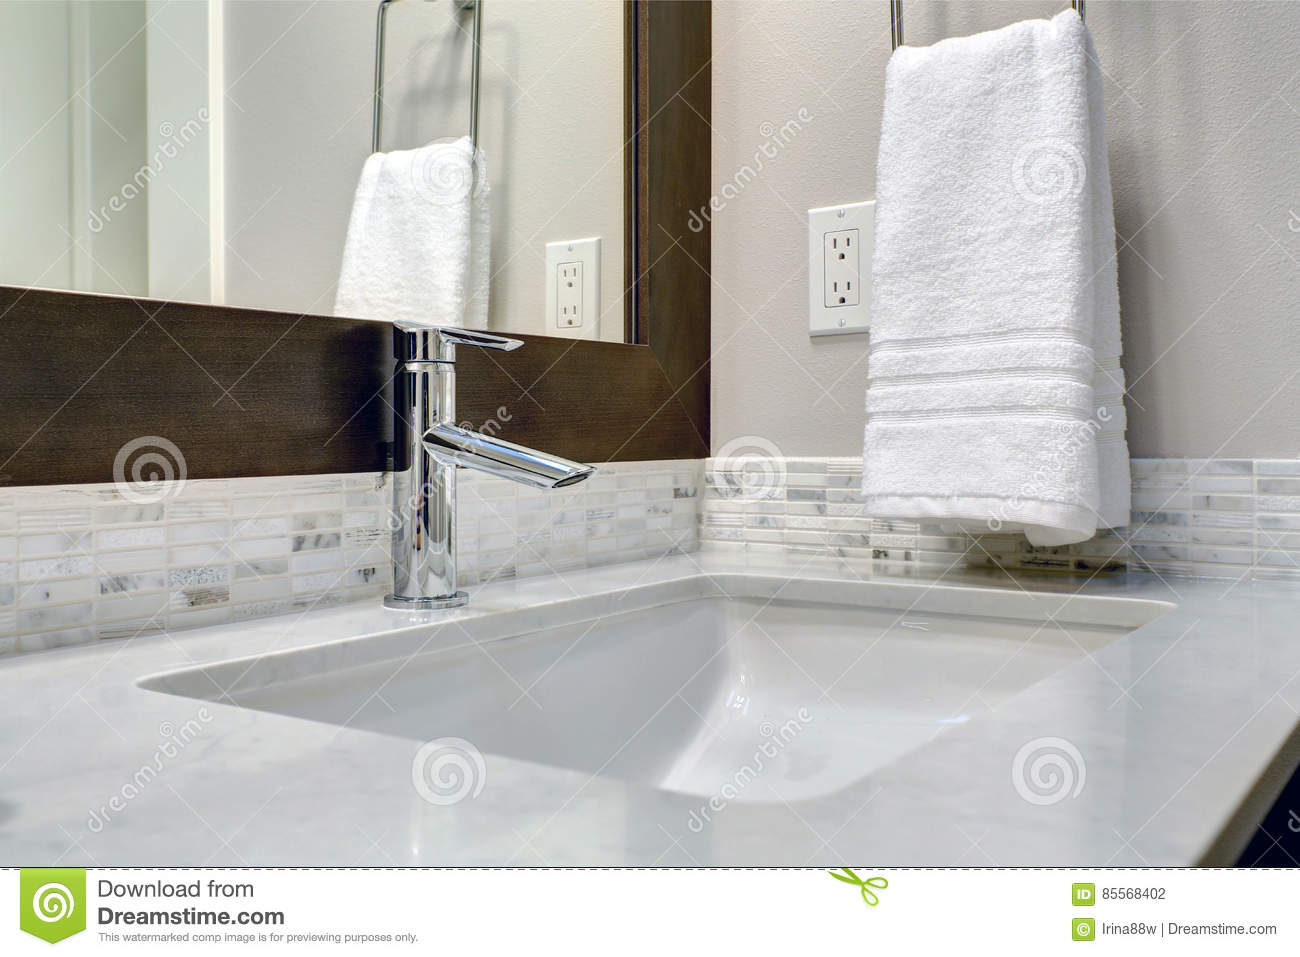 Close-up View Of Bathroom Vanity Stock Photo - Image of room ...